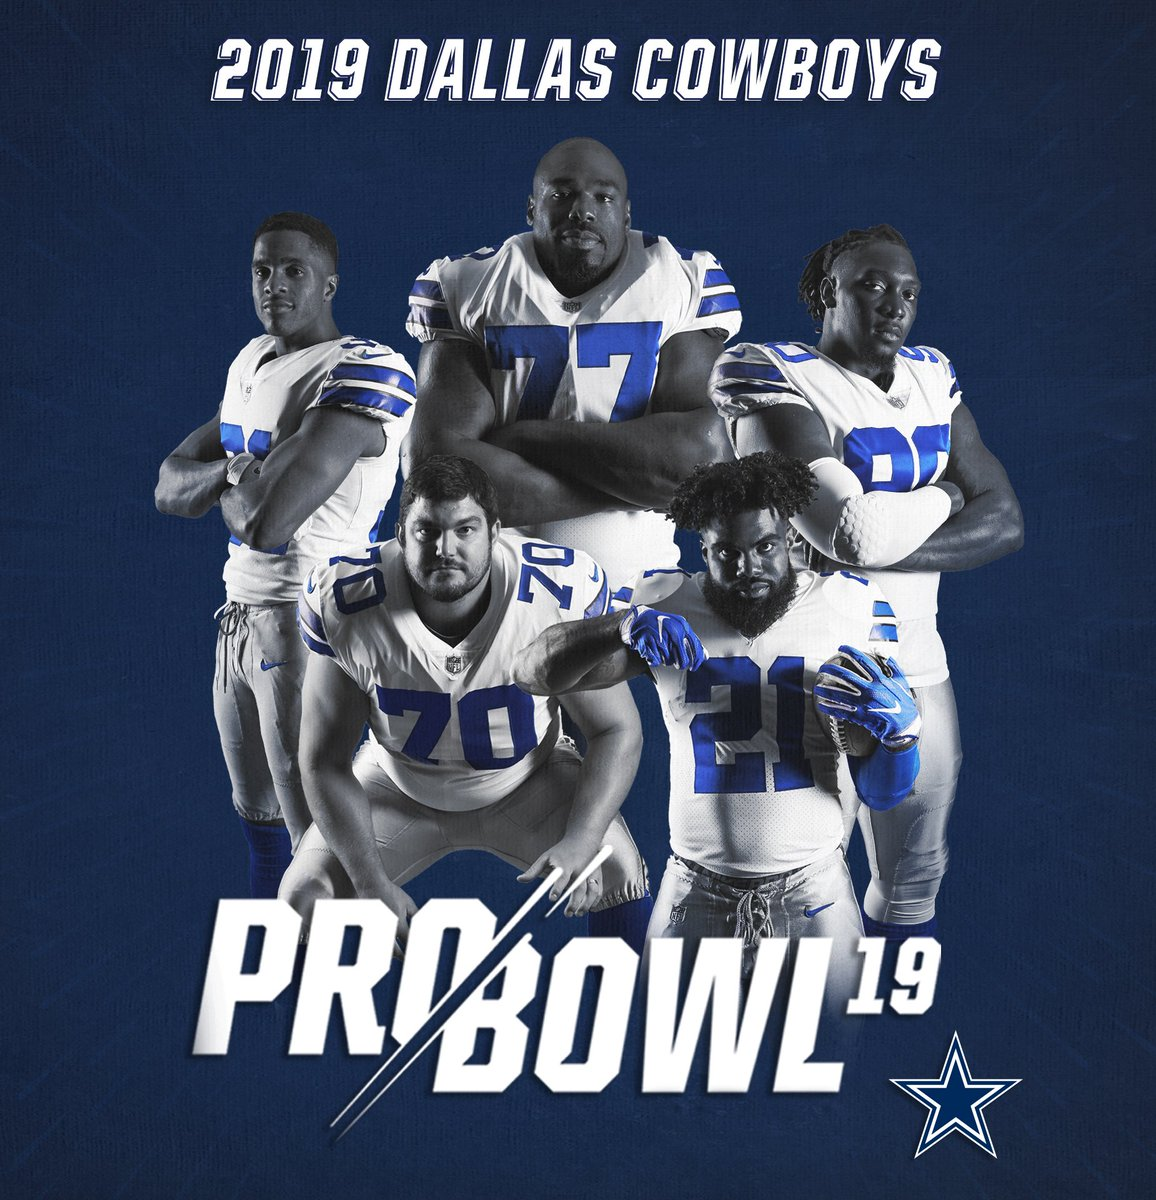 c4d6269a9 Dallas Cowboys on Twitter